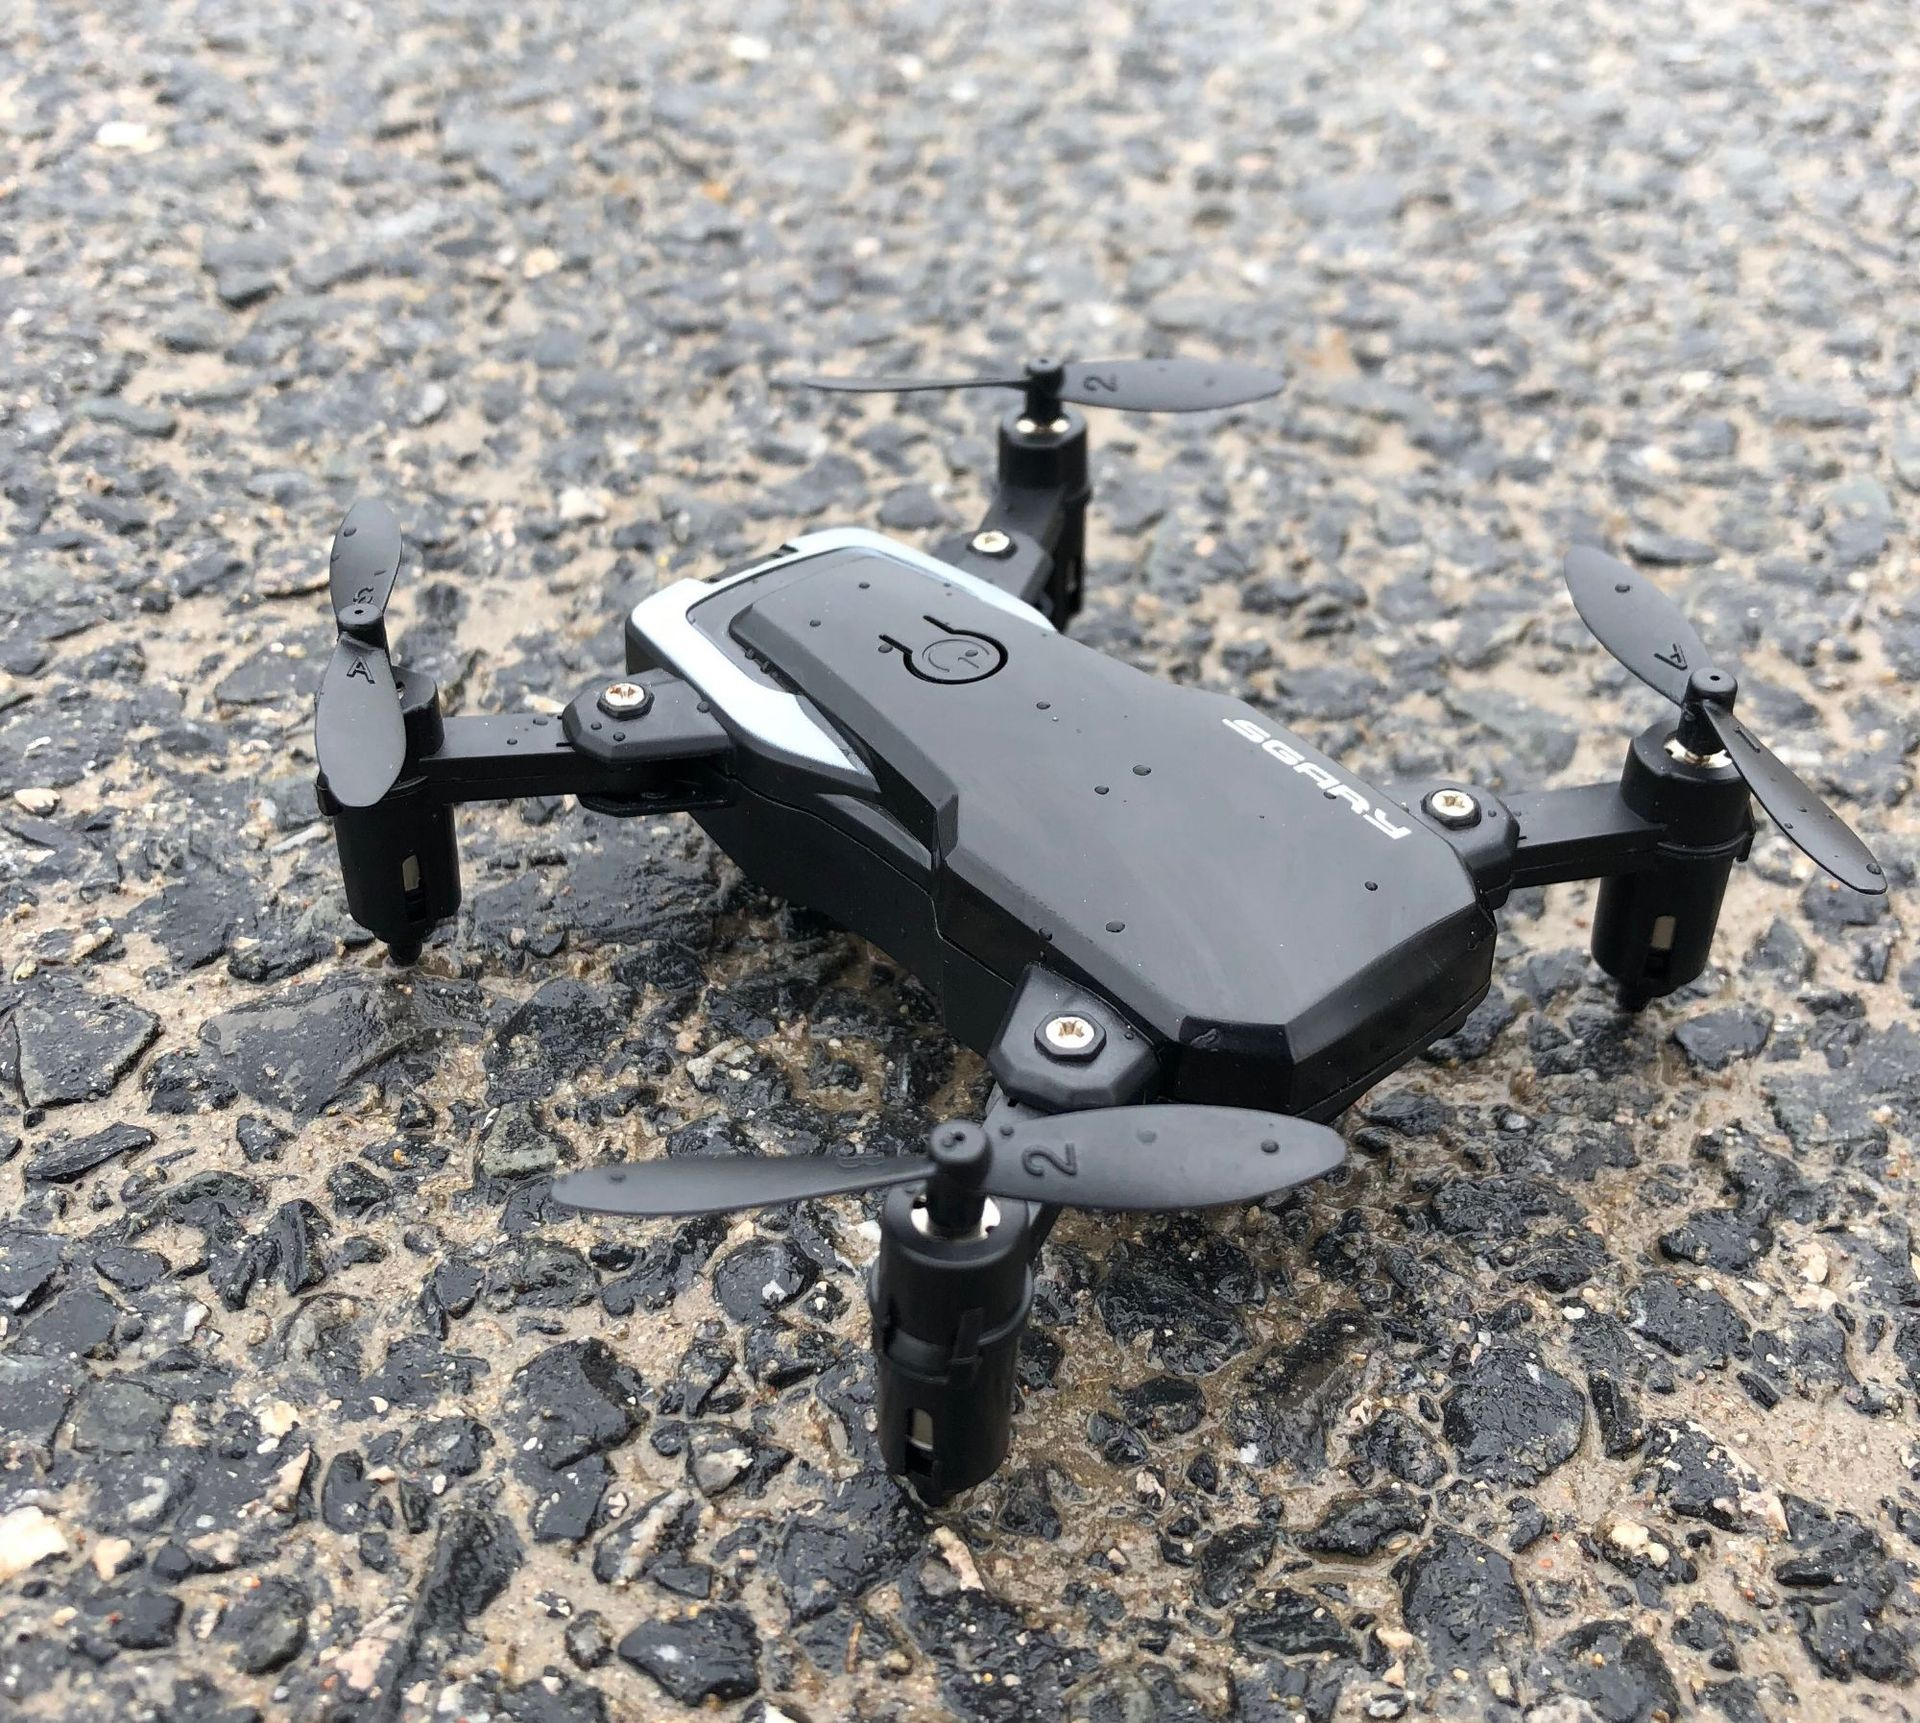 Hot Selling Mini Folding Unmanned Aerial Vehicle Four-axis Aircraft For Areal Photography High-definition Aerial Photography Pro